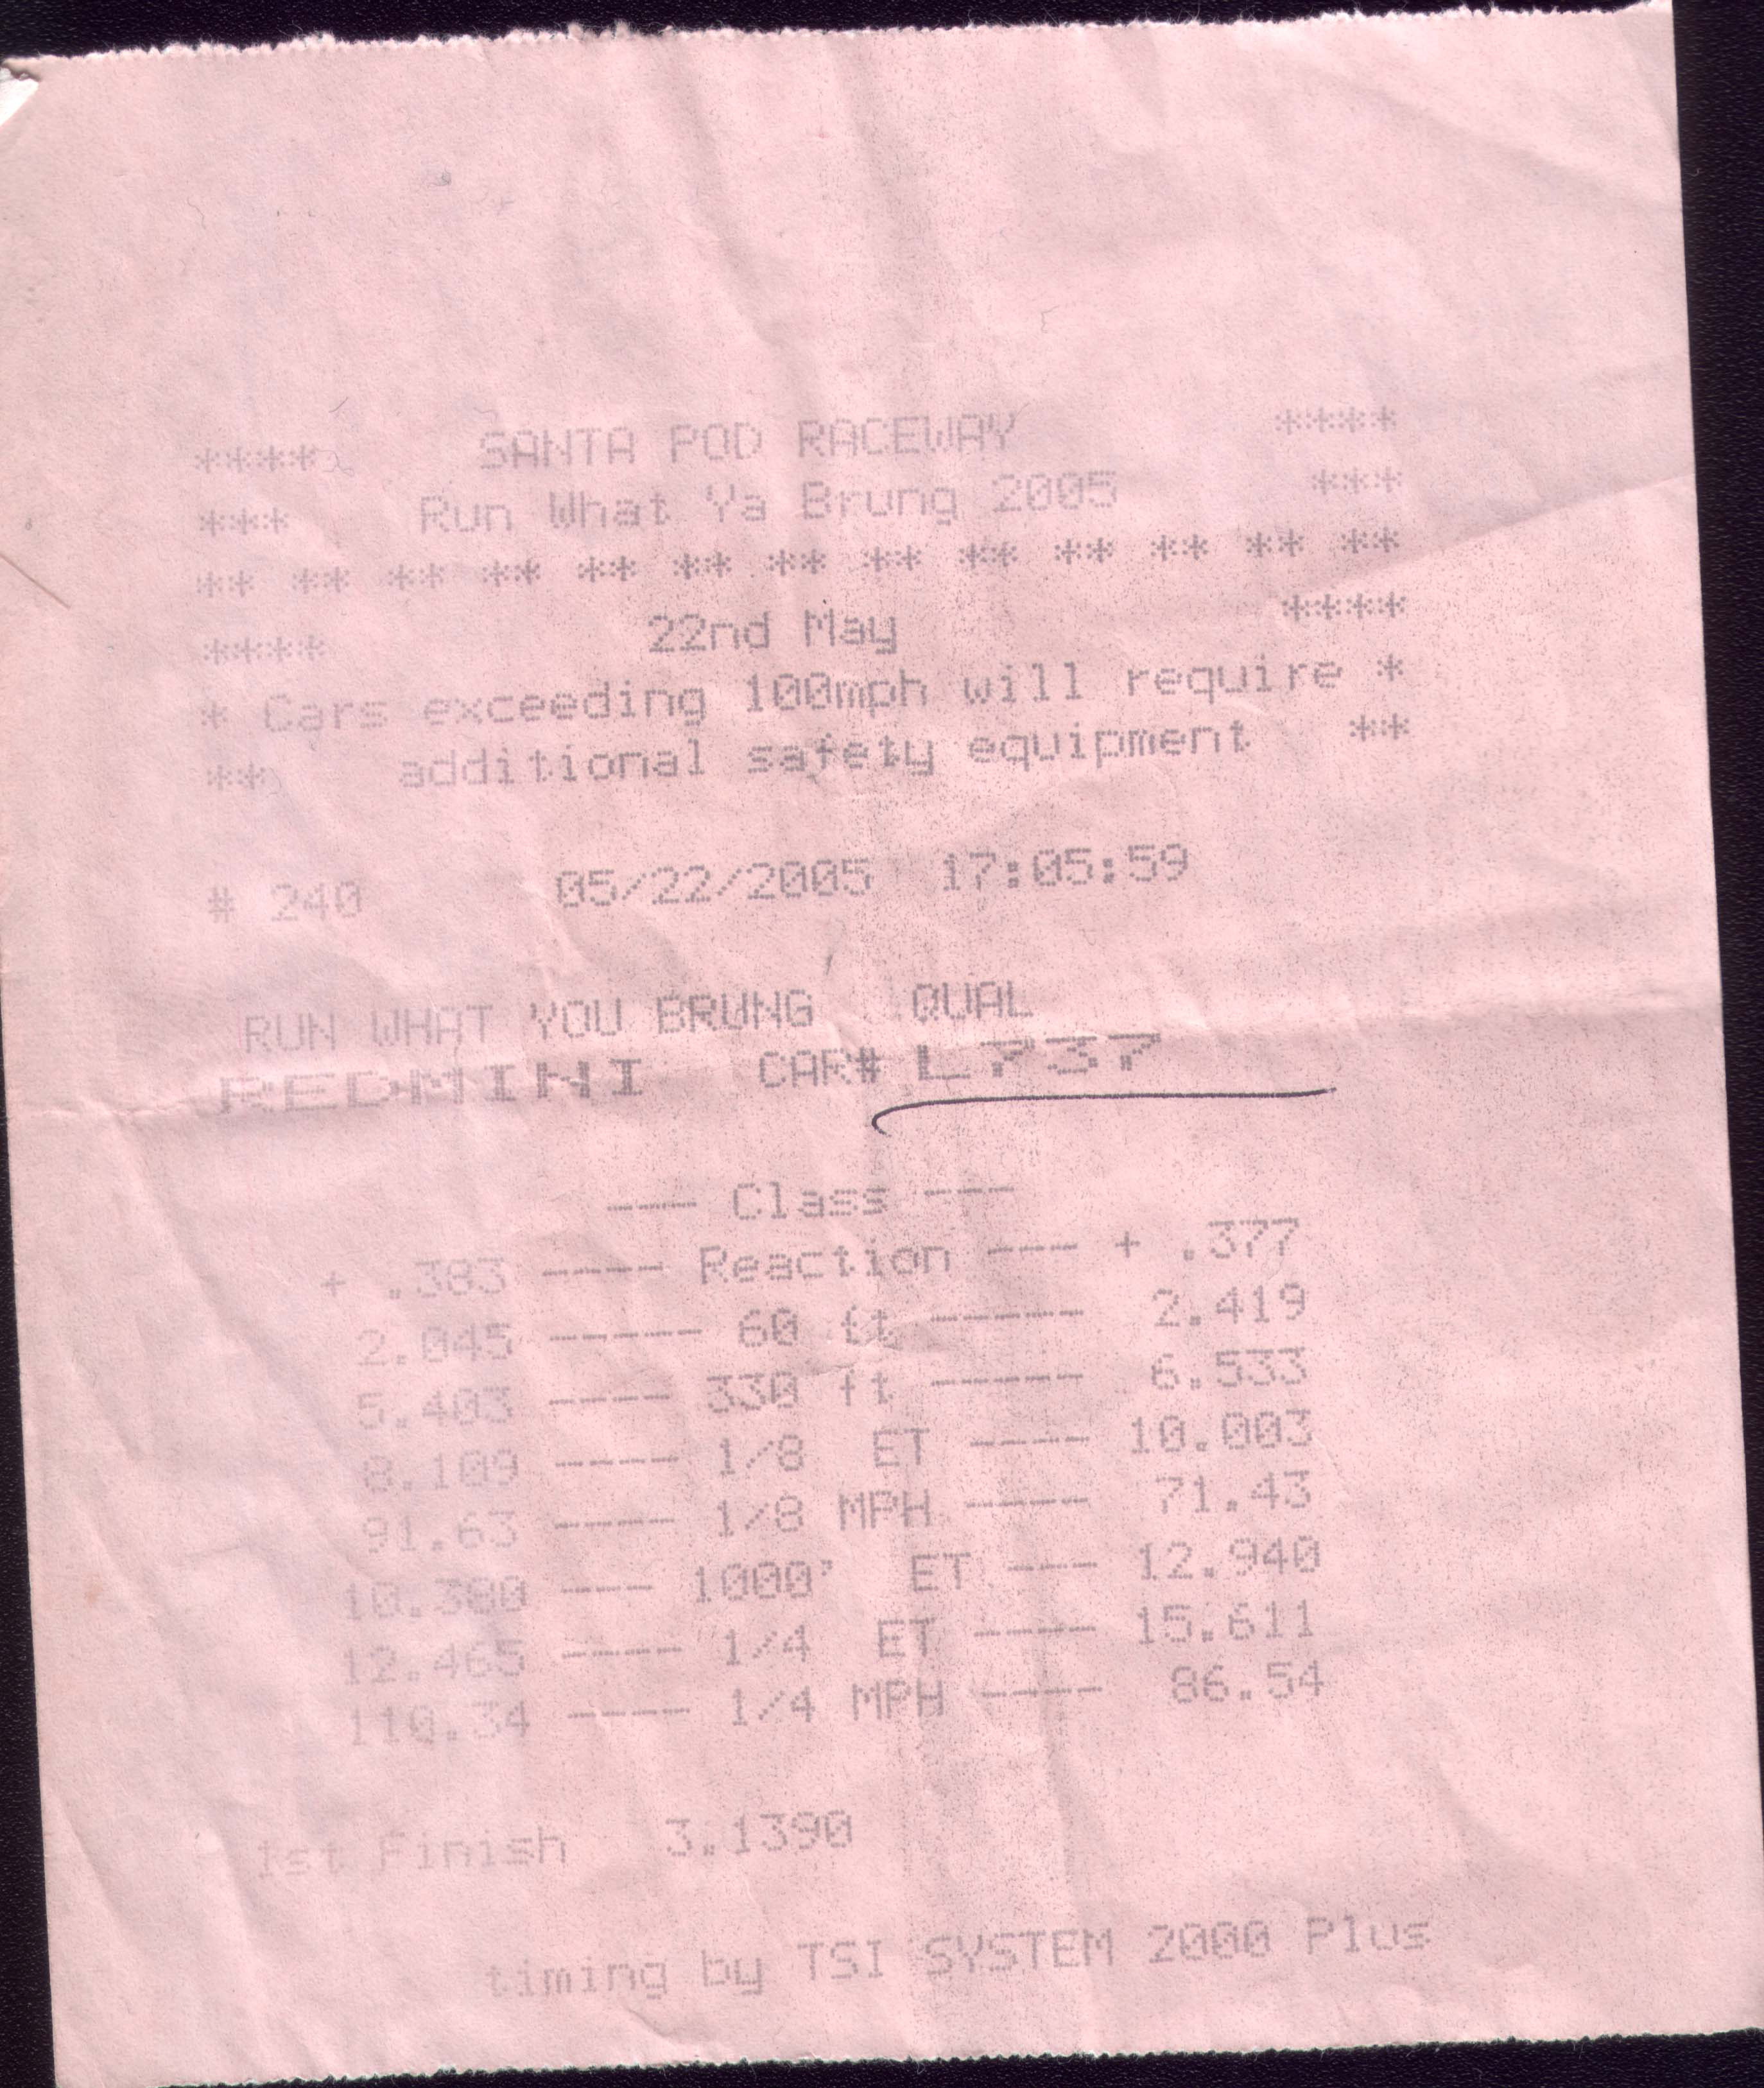 Rover Metro Timeslip Scan